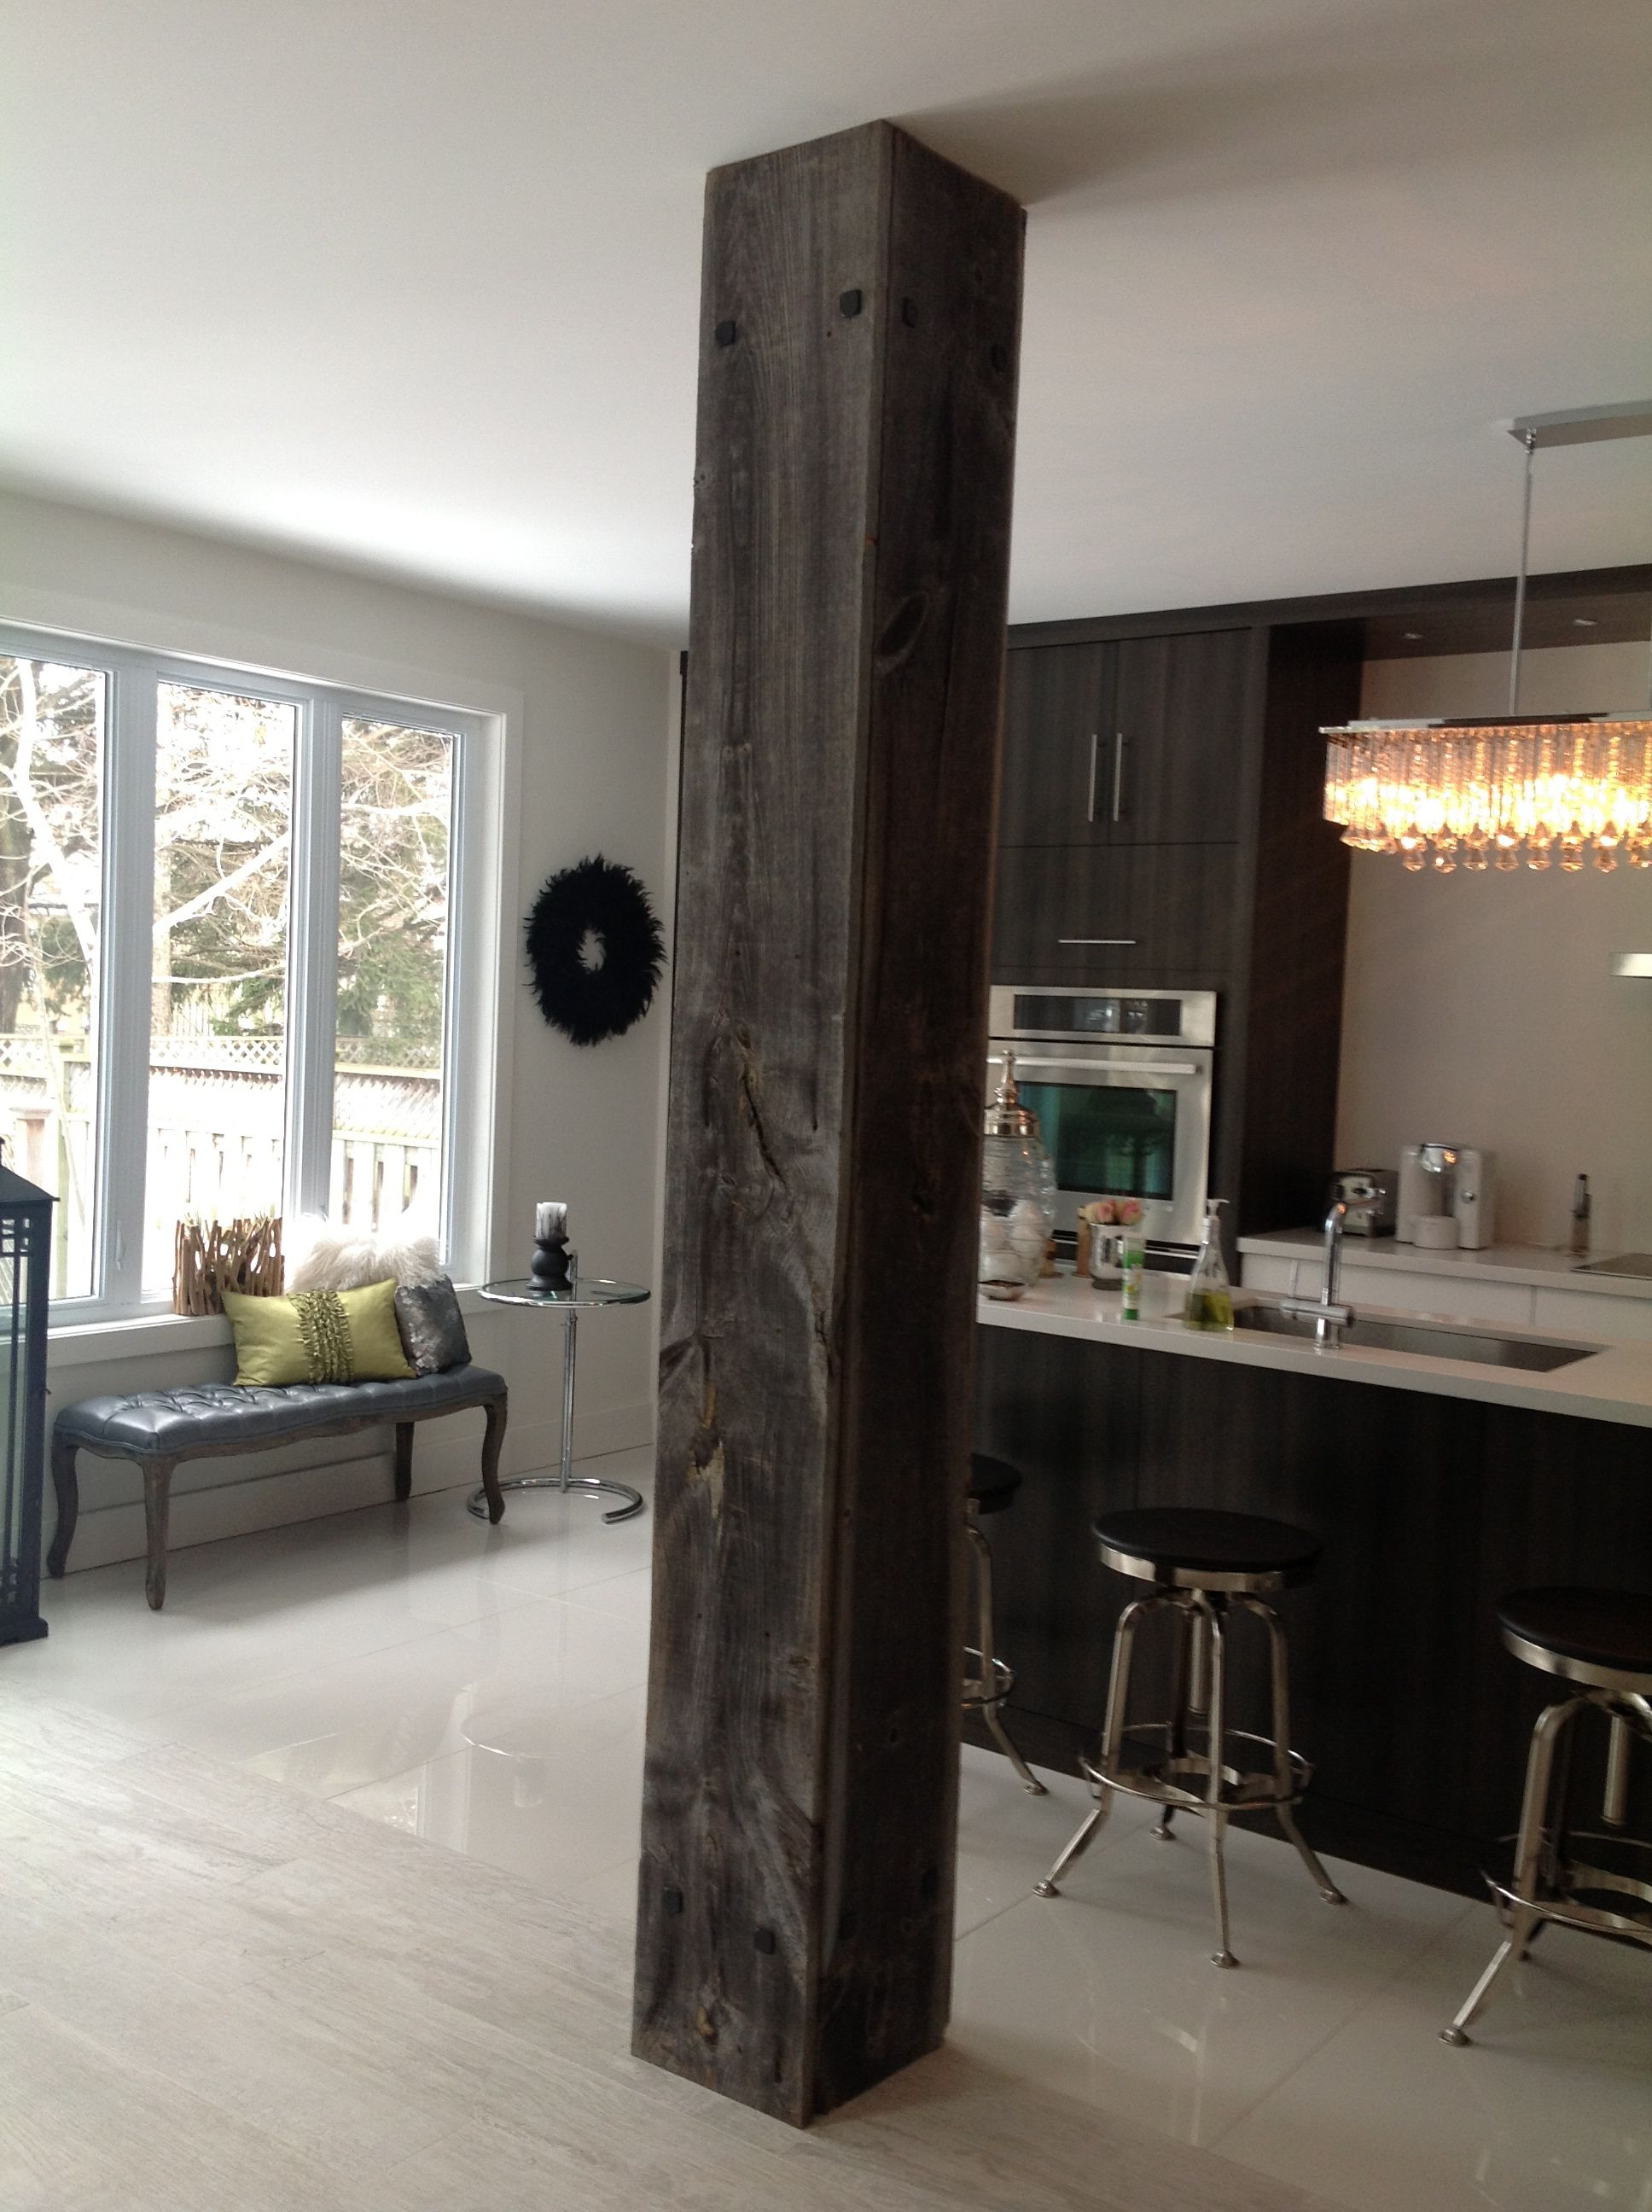 board remodel ideas wood islands barn barnwood reclaimed picts interior modern walls kitchen with miniox and peninsula island accents be recovered